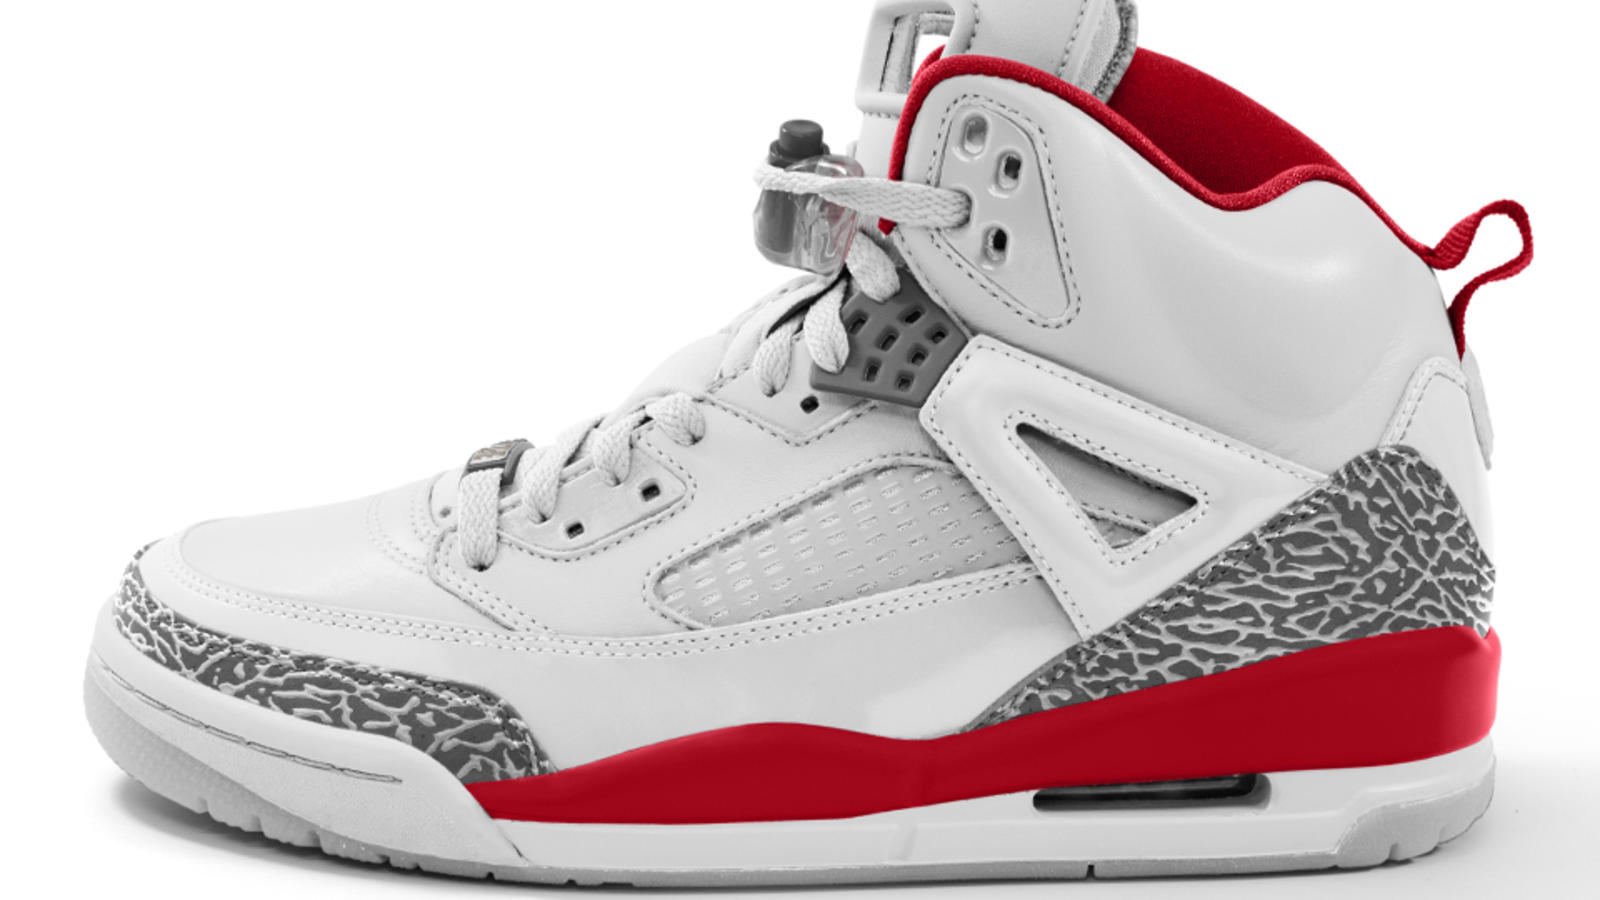 Jordan Spiz ike on NIKEiD - Nike News 56824794d